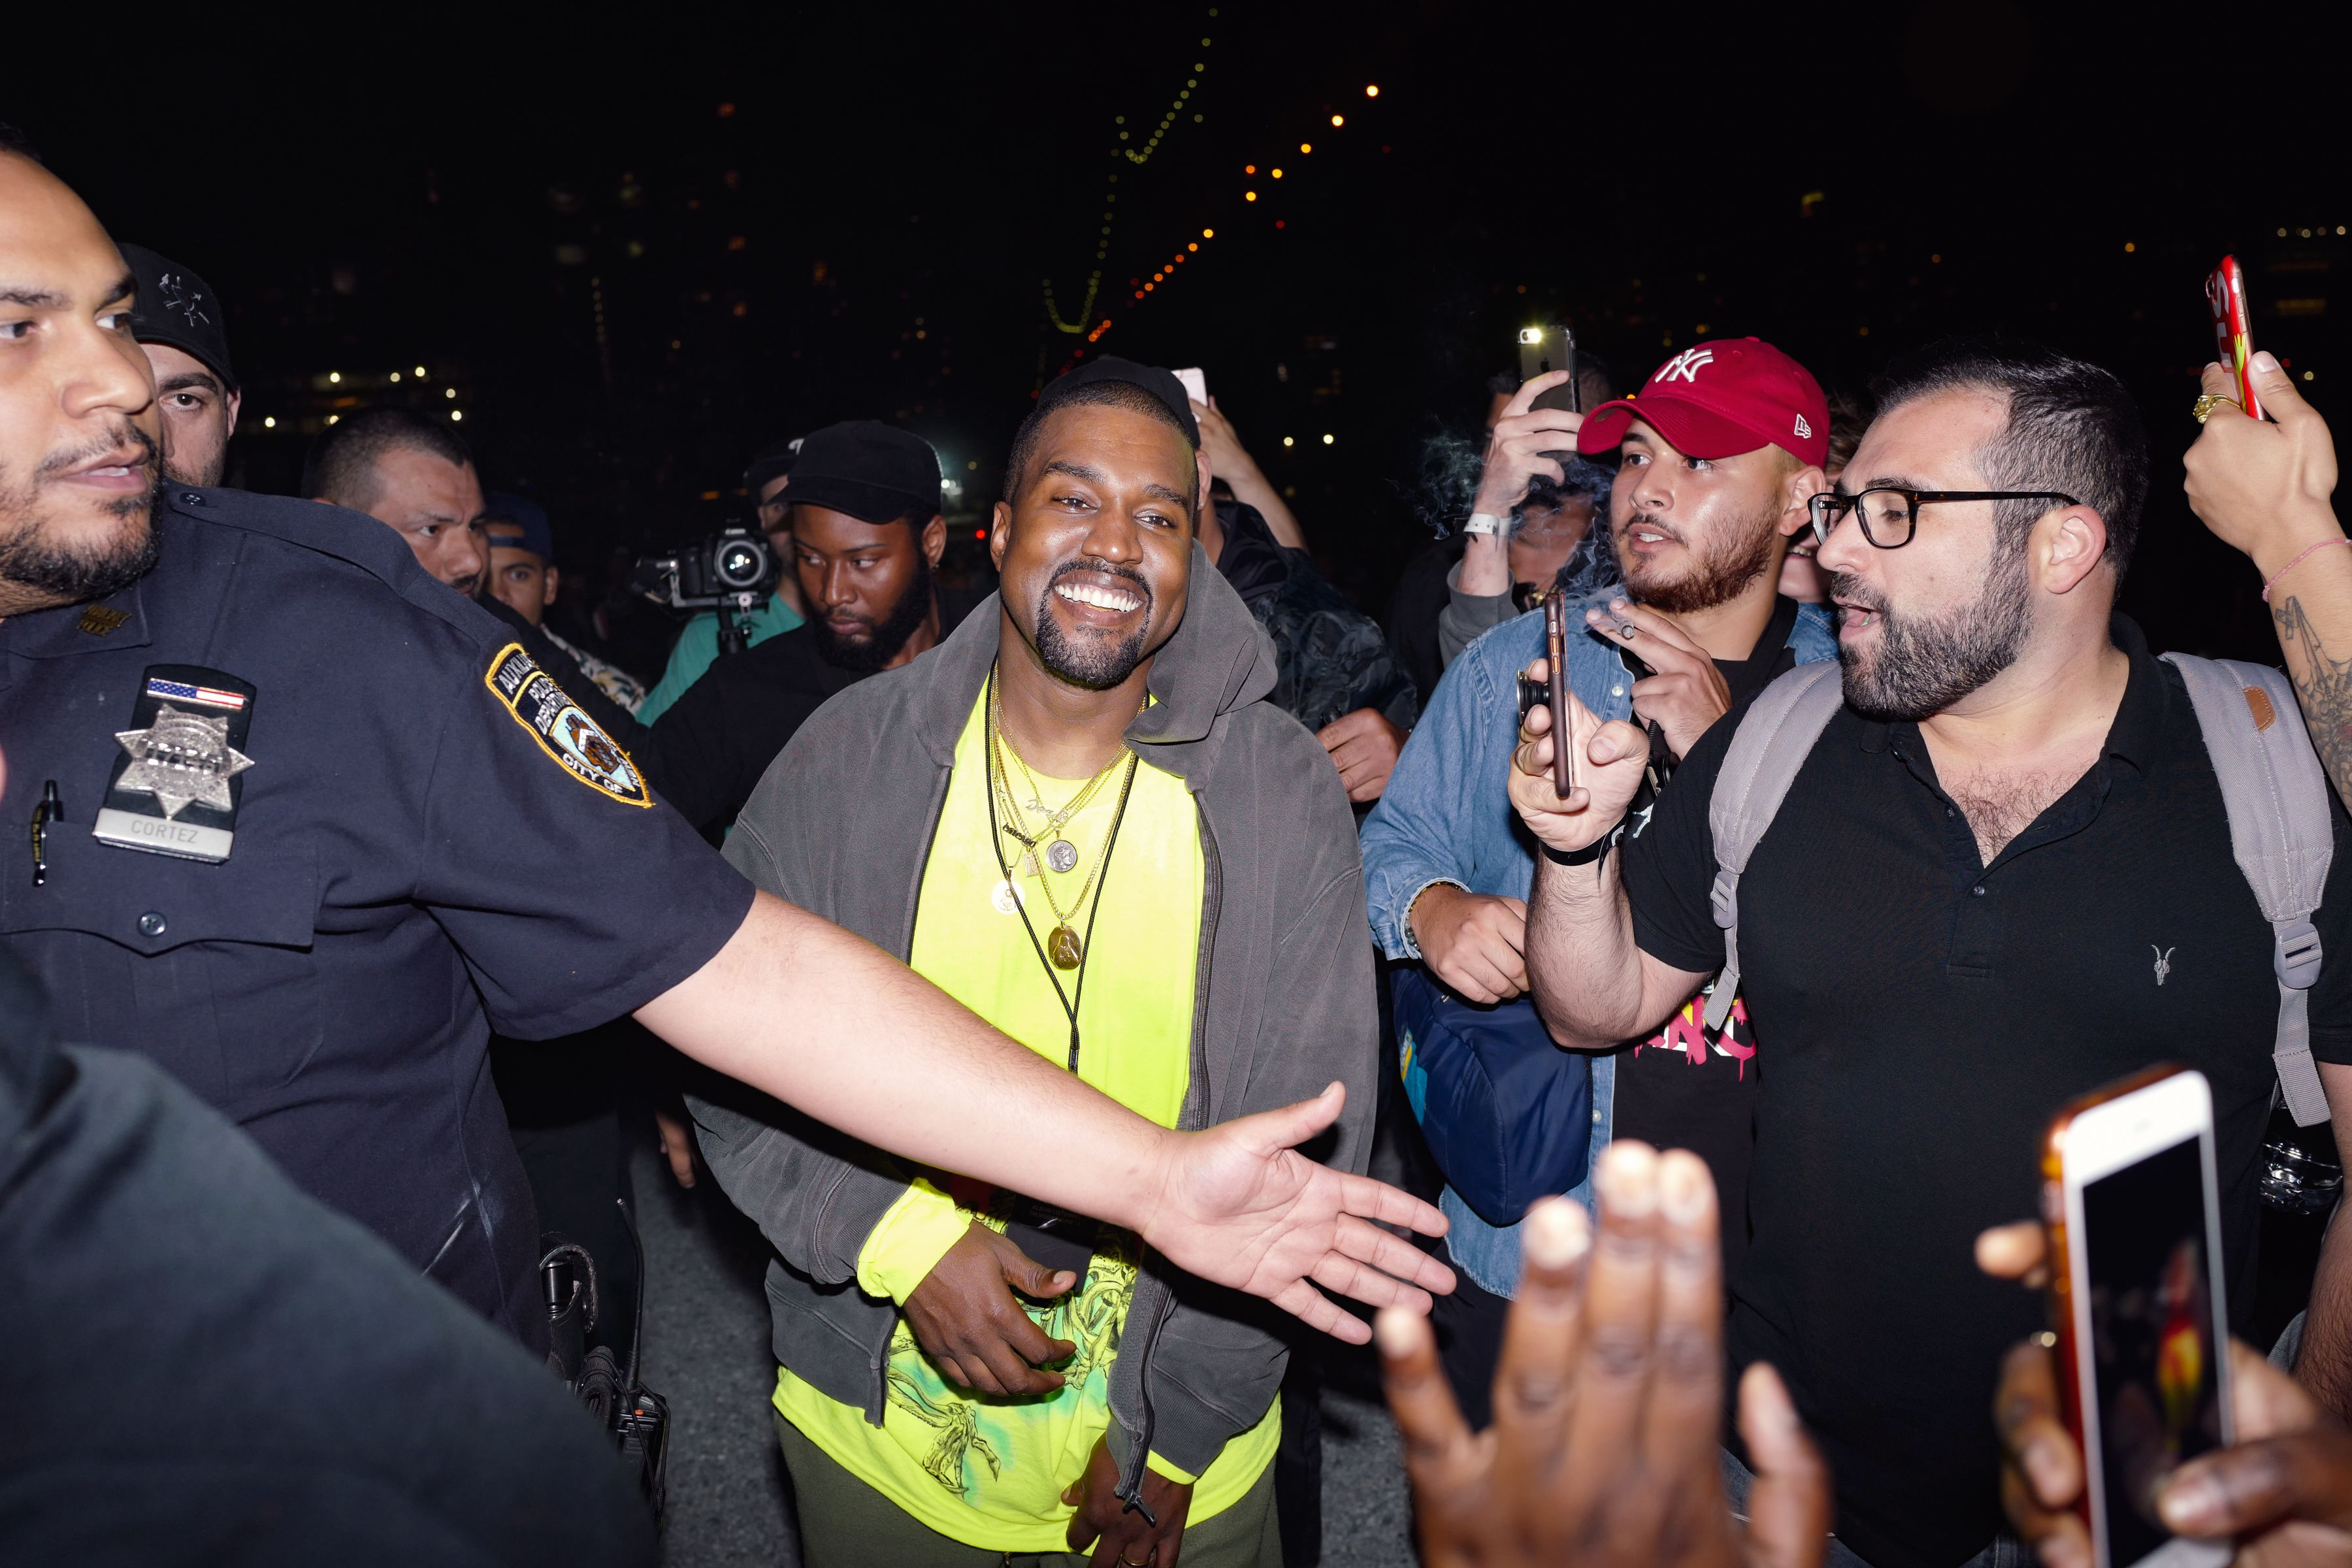 Kanye West Apologizes To Drake Over Lift Yourself Beat Pusha T Shirt Tribute Star Wars Doctor Who Forbidden Planet Short Diss Tracks Rolling Stone